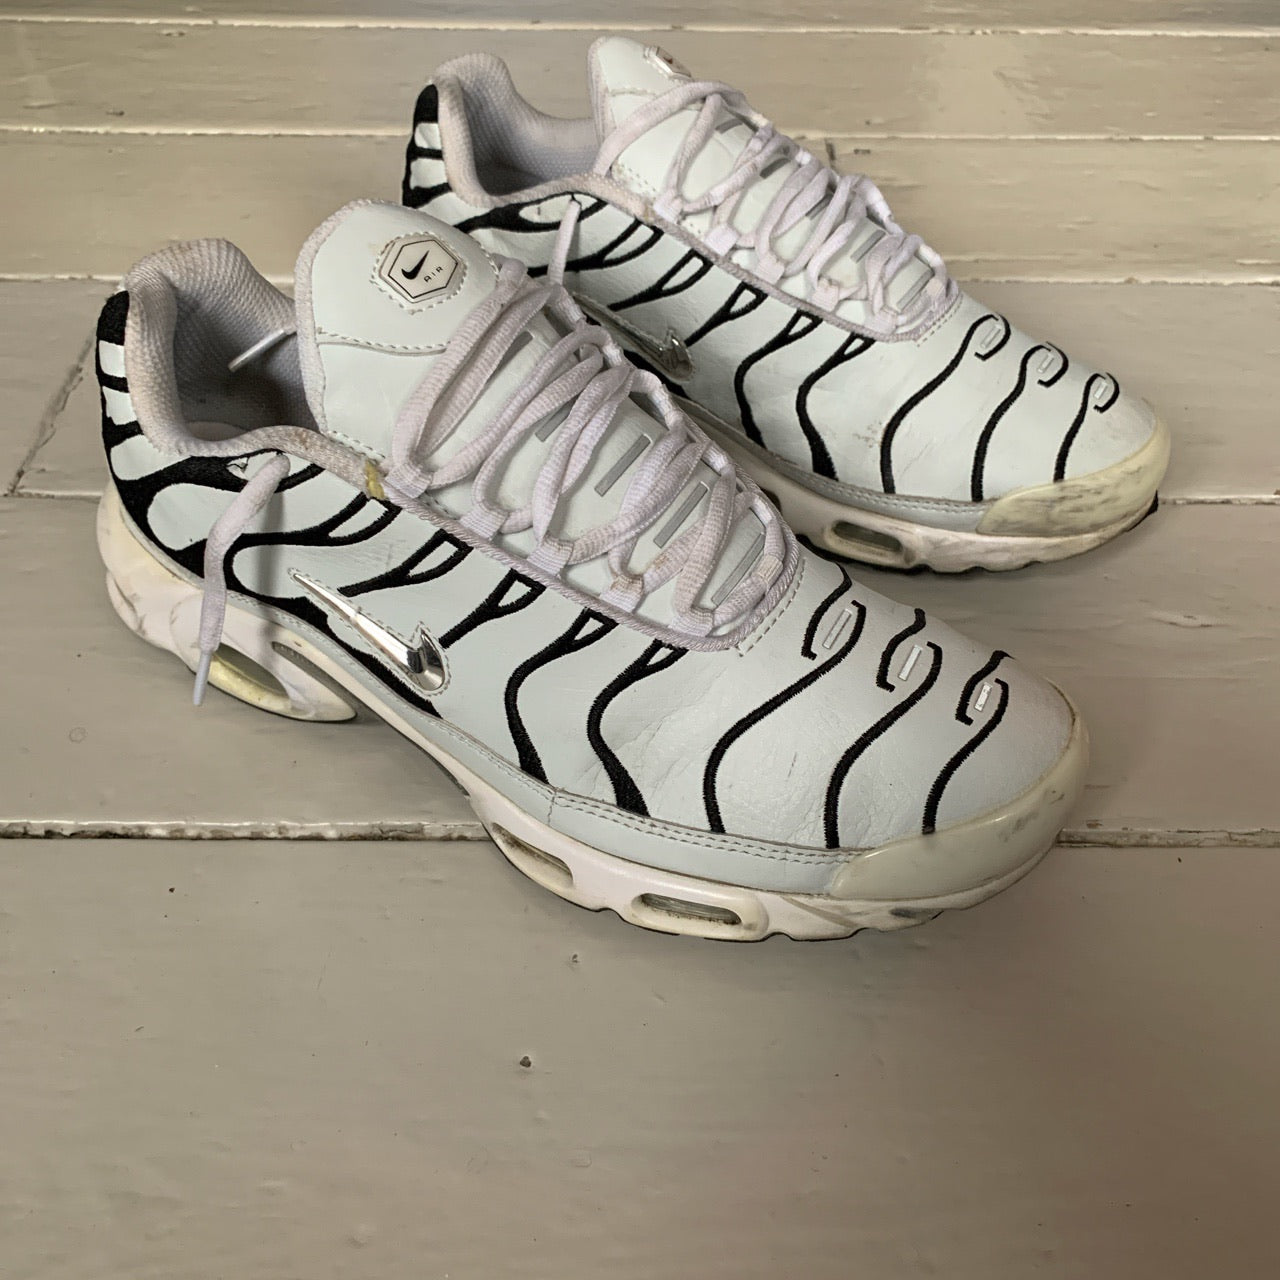 nueva productos ahorros fantásticos muy agradable Nike TN Air Max Plus TN White Leather (UK 12) – Wear Garson